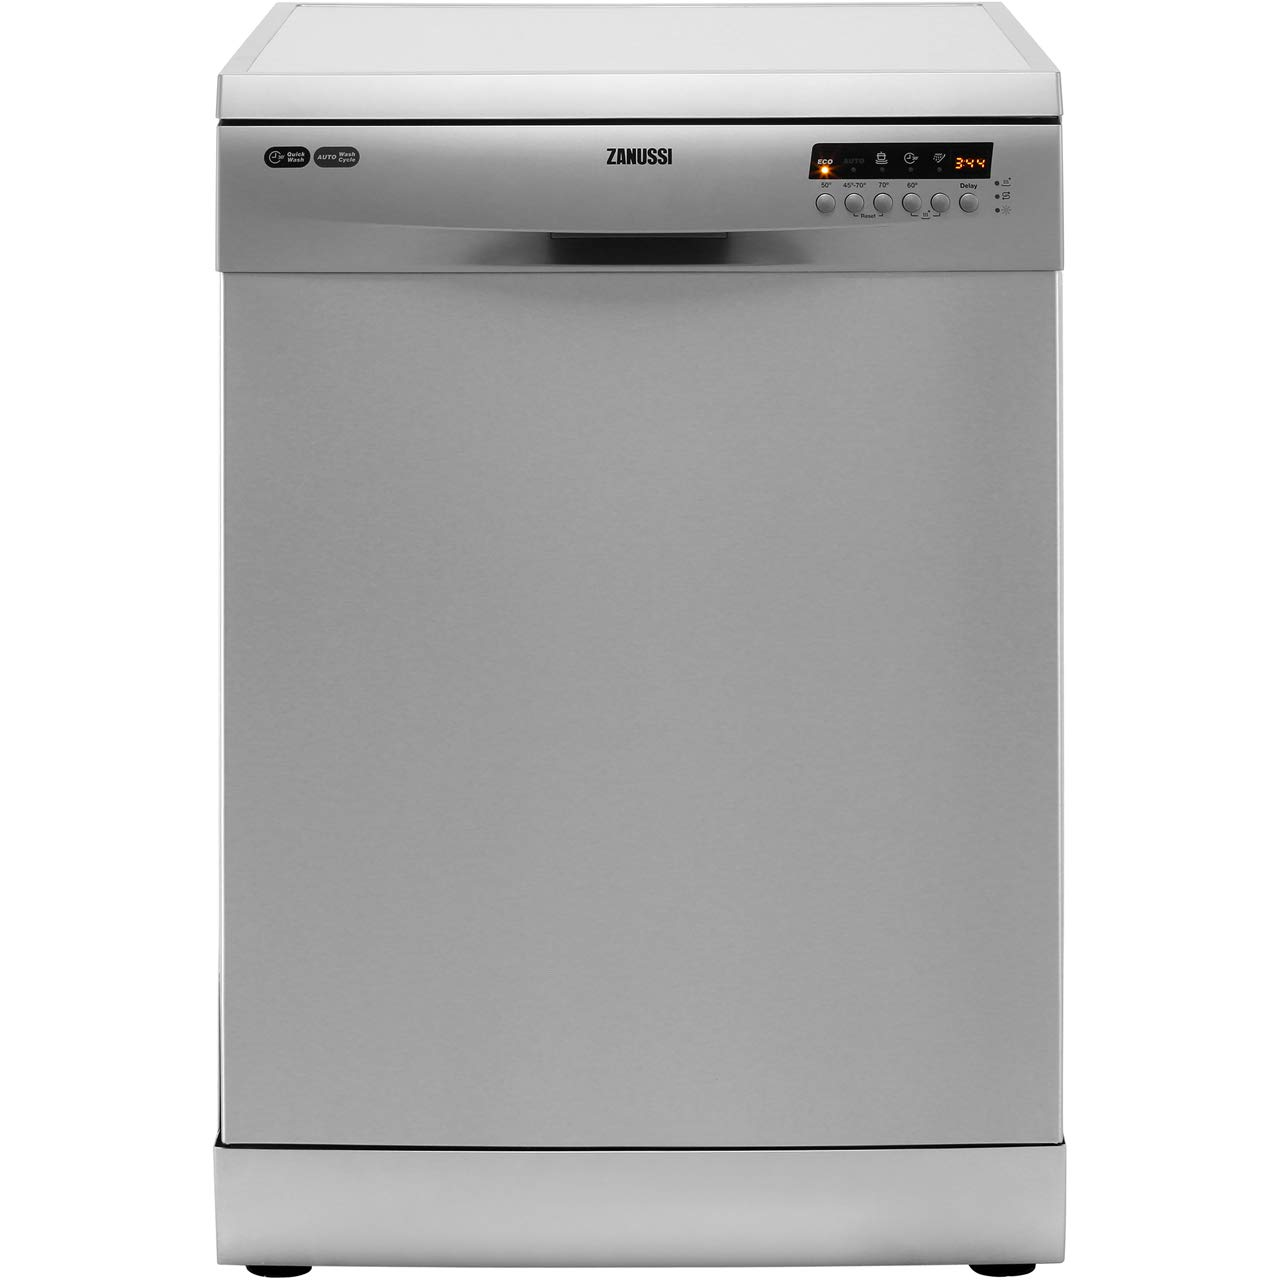 Zanussi Zdf26004xa Freestanding Dishwasher With Airdry Technology 13 Place Settings 5 Programmes Stainless Steel Amazon Co Uk Large Appliances